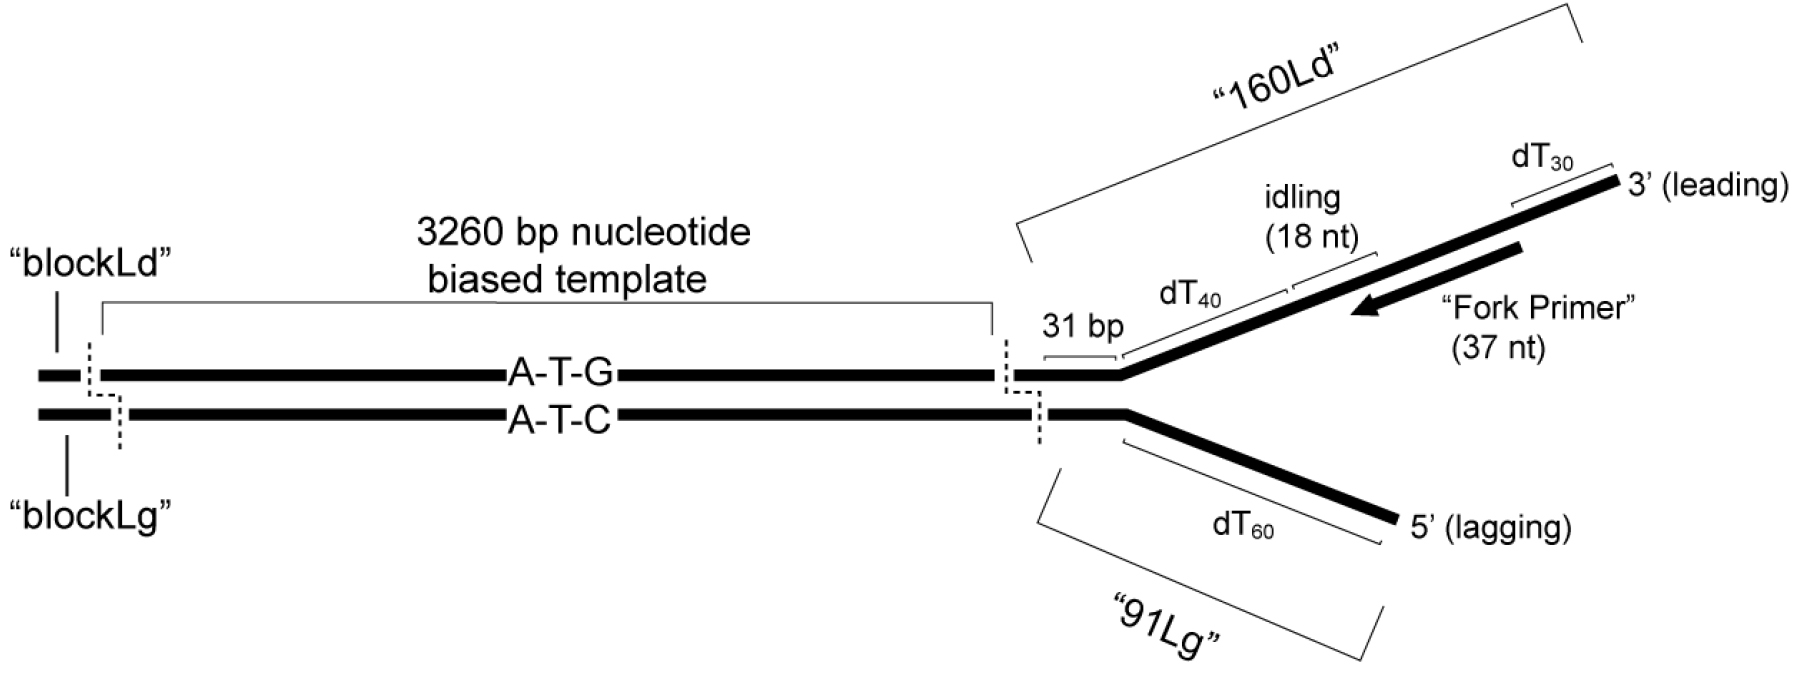 In vitro assays for eukaryotic leadinglagging strand dna schematic of nucleotide biased substrate the 3nbf substrate including the oligonucleotides described in the text is shown with the relevant features solutioingenieria Choice Image